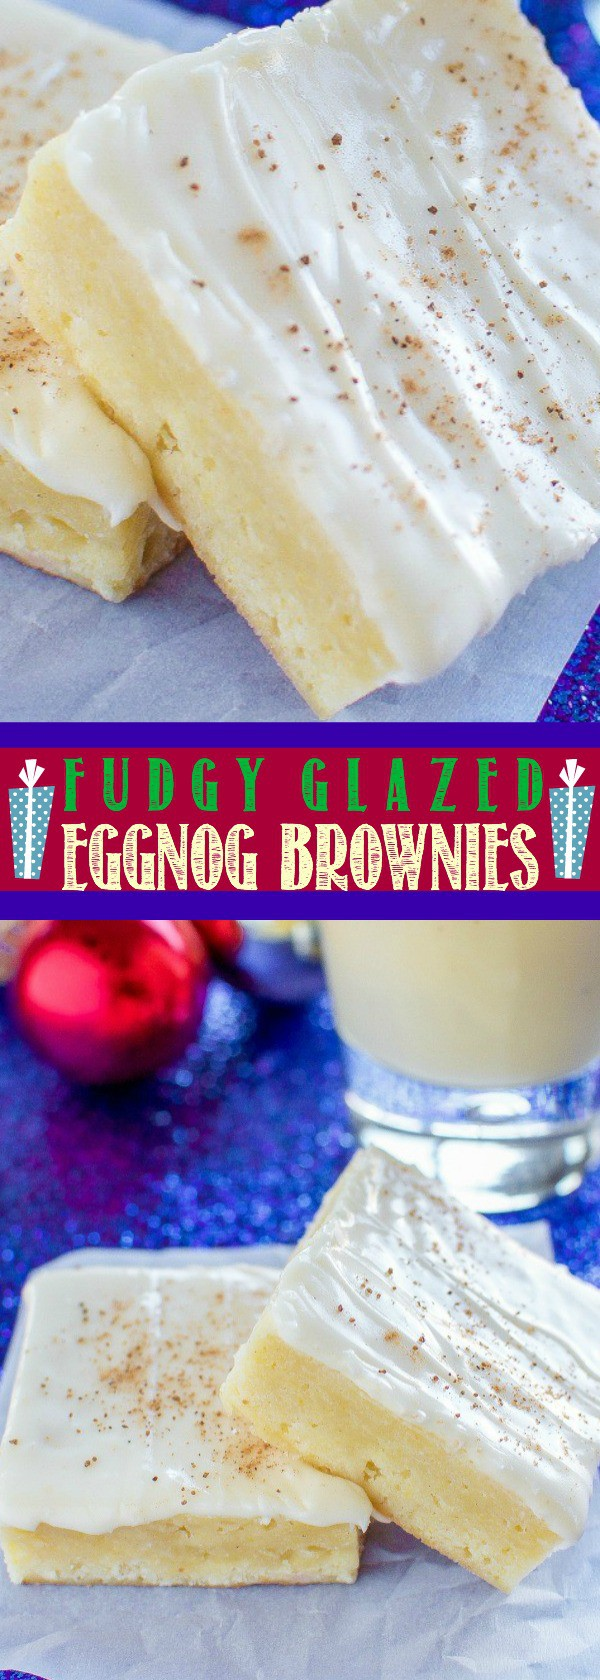 Fudgy Glazed Eggnog Brownies - An easy, festive Christmas dessert!